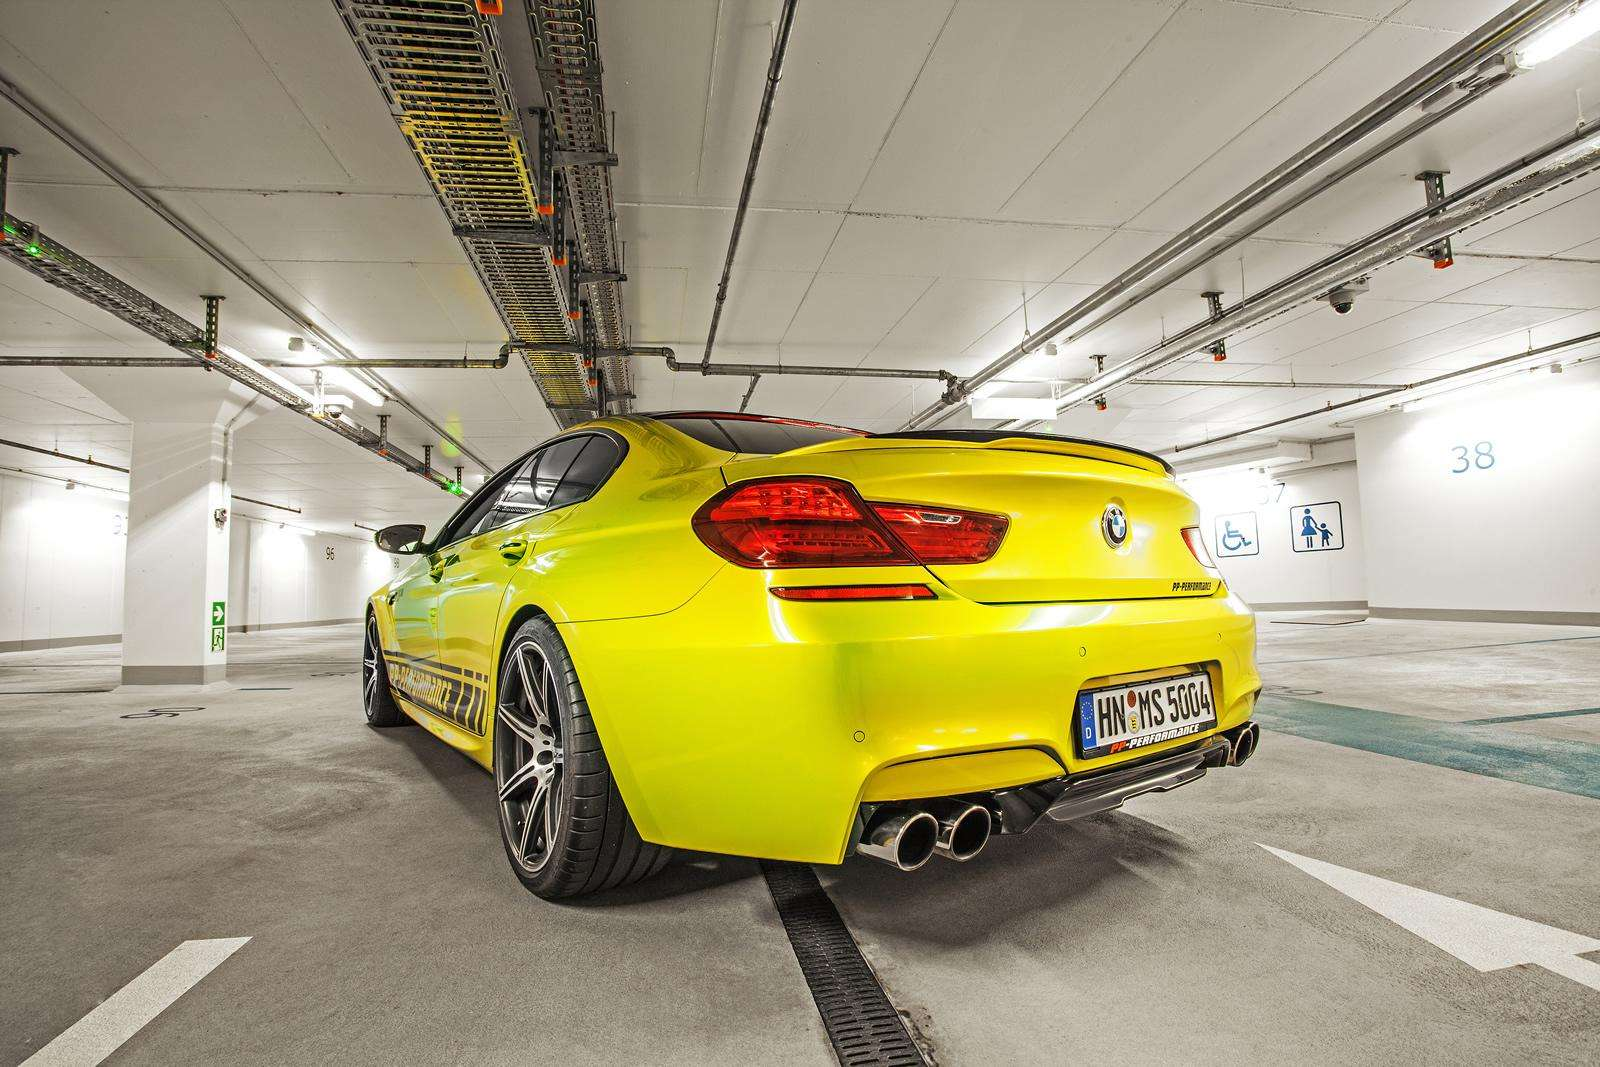 m6-ppperformance_13